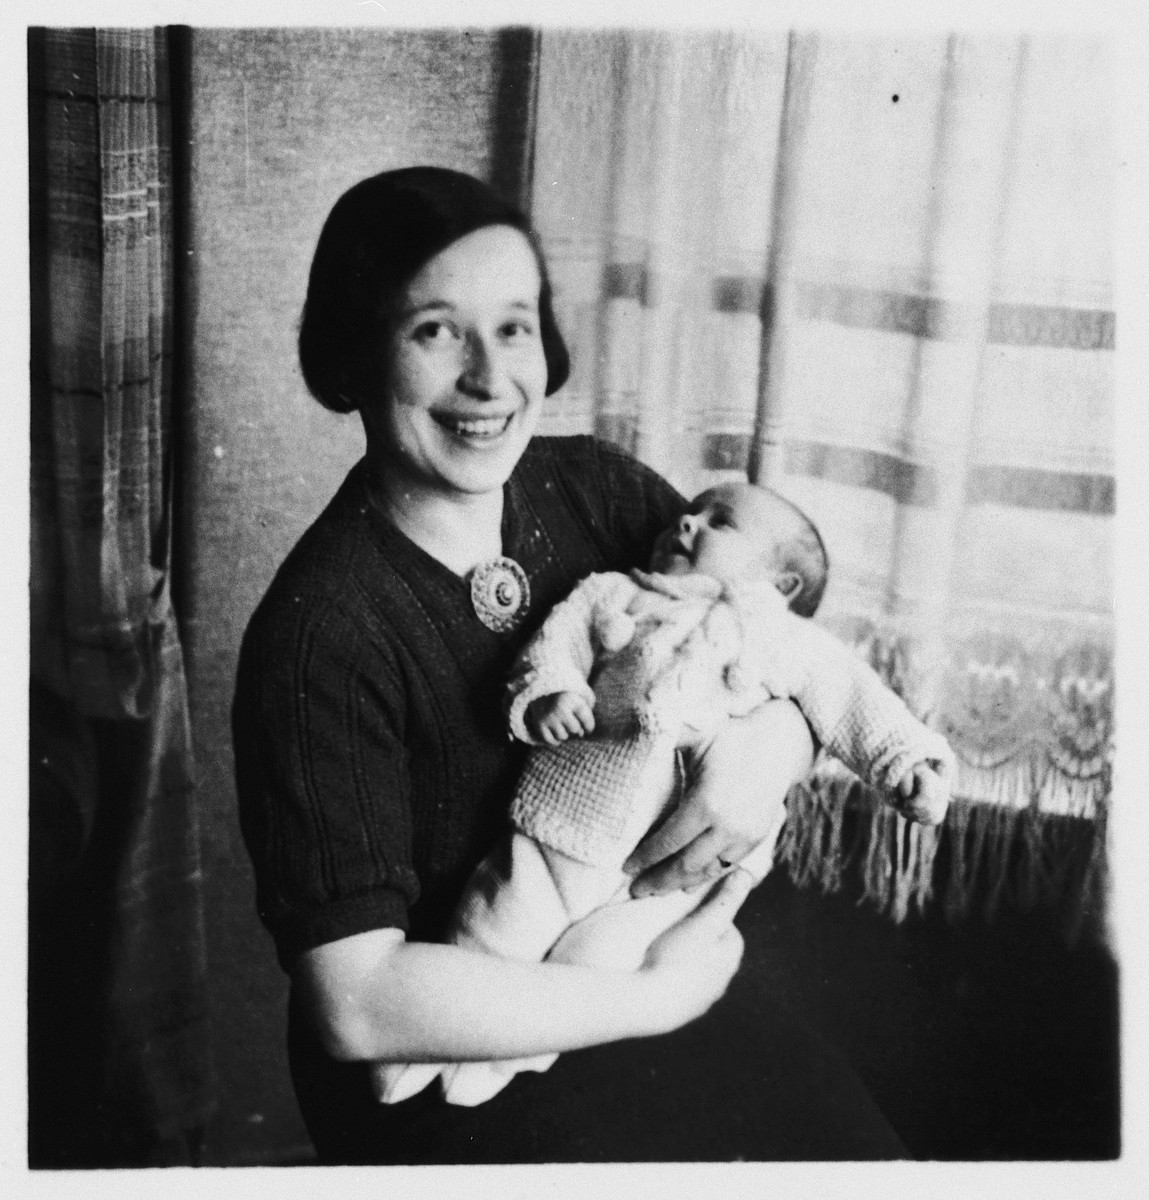 Irmgard Koeppel holds her newborn baby daughter Judith in her arms.